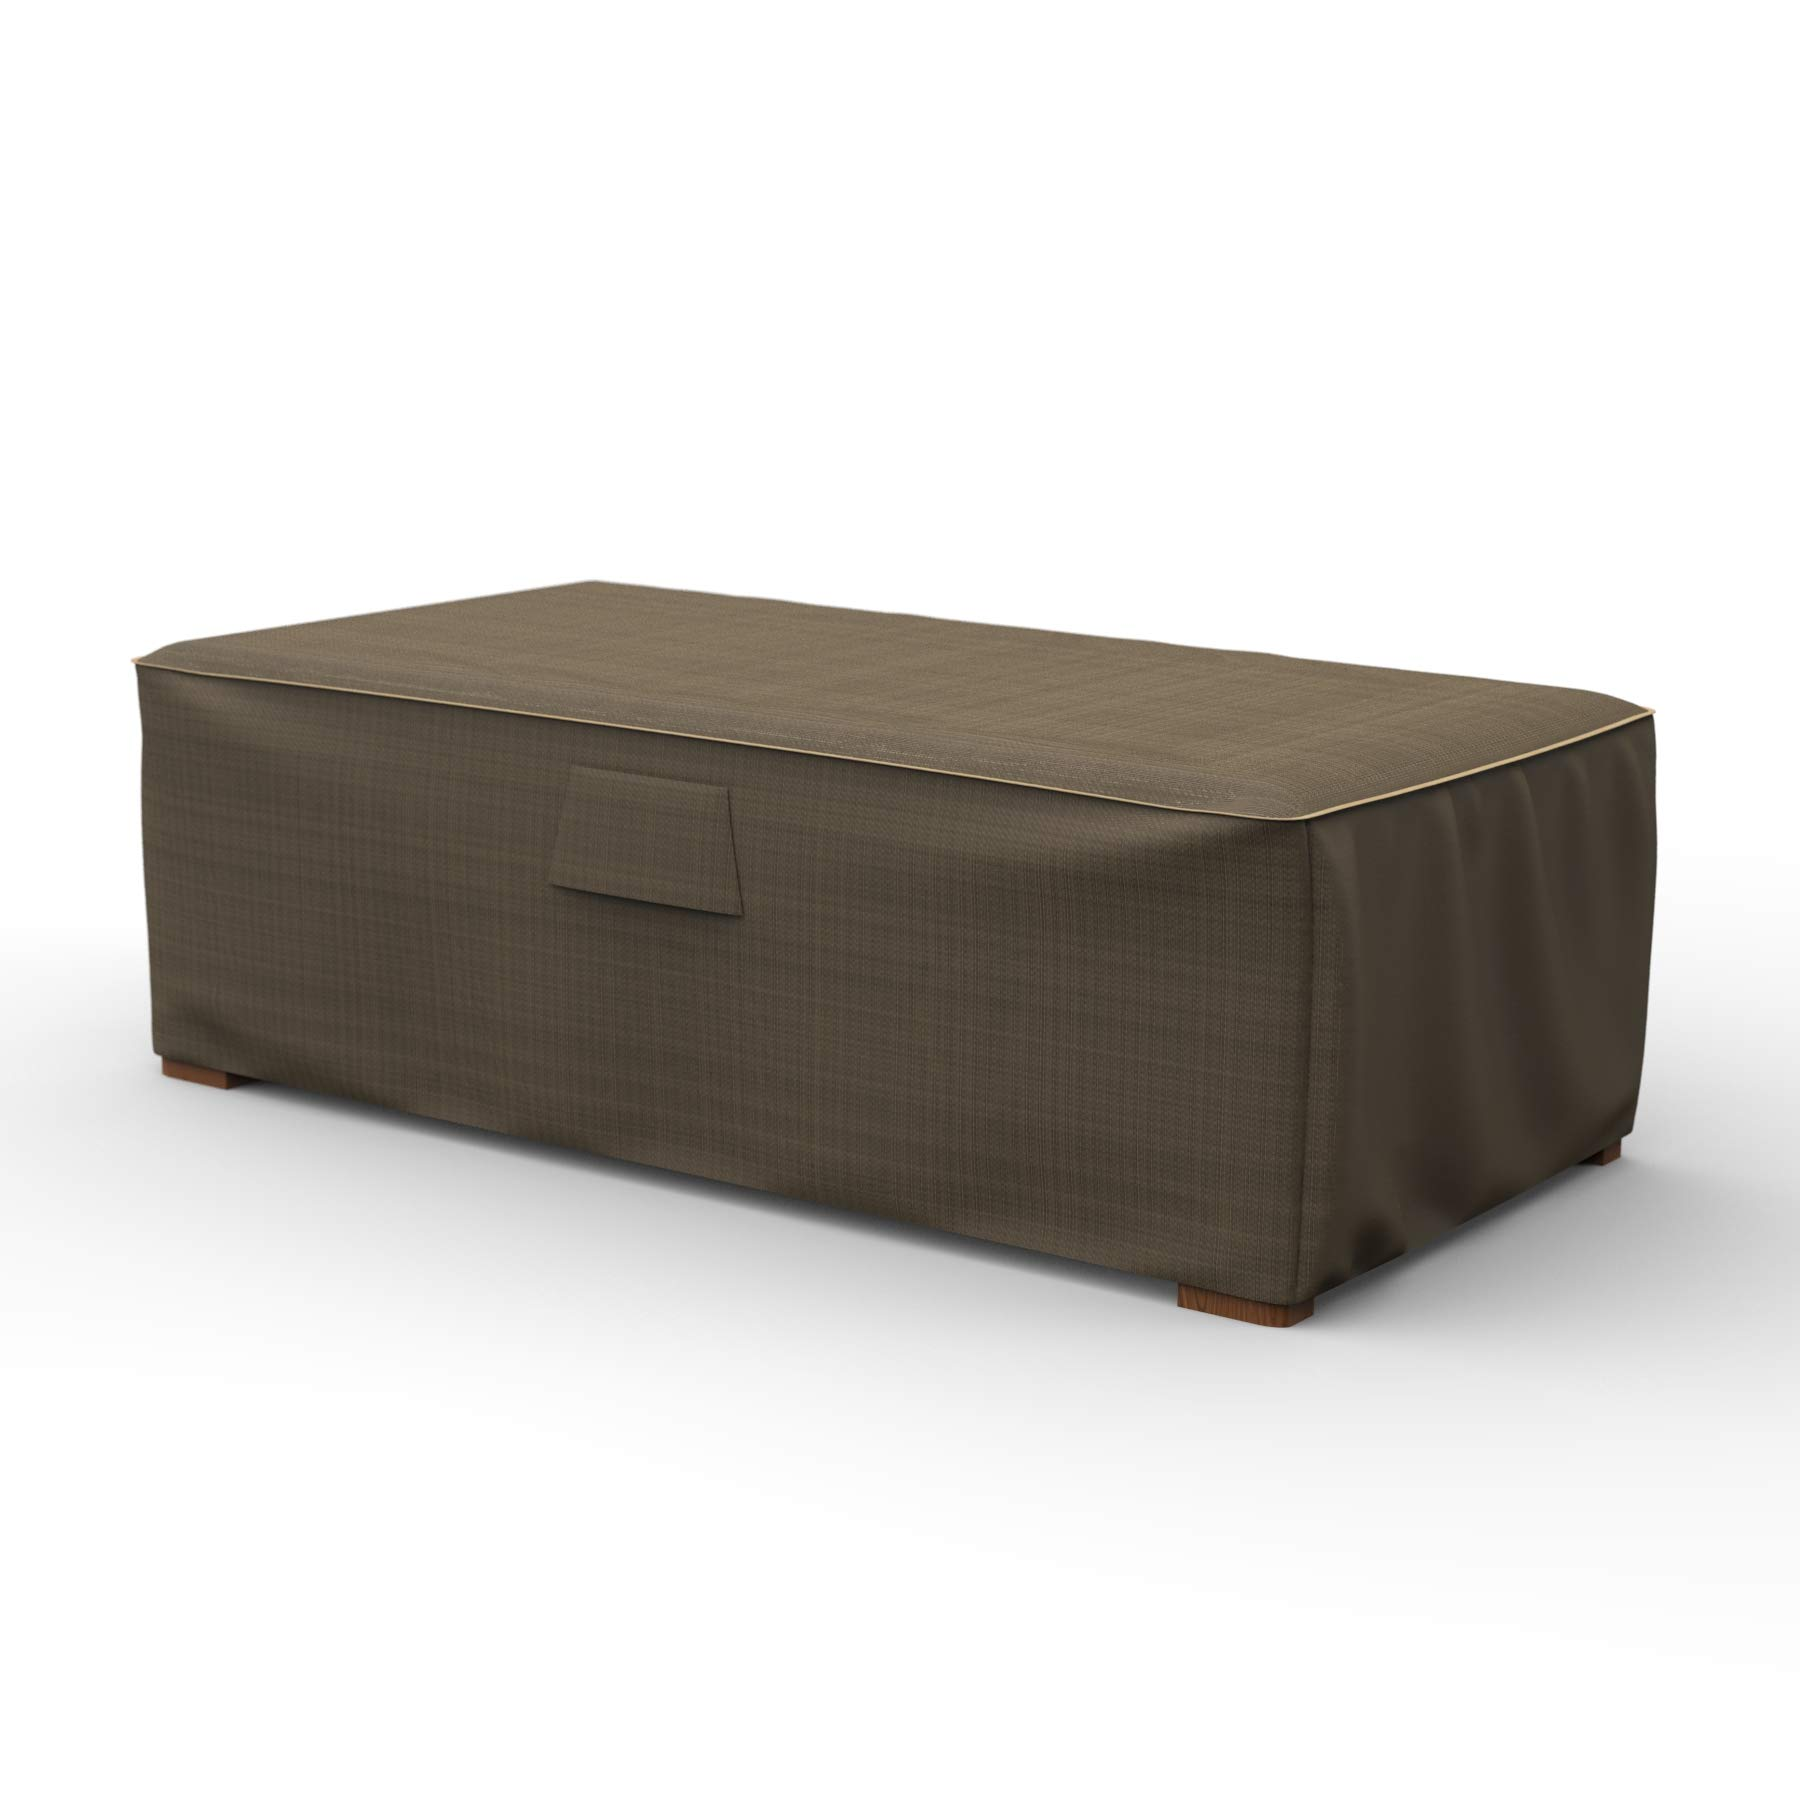 NeverWet Platinum Patio Ottoman Cover/Coffee Table Cover, Large (Black and Tan Weave)